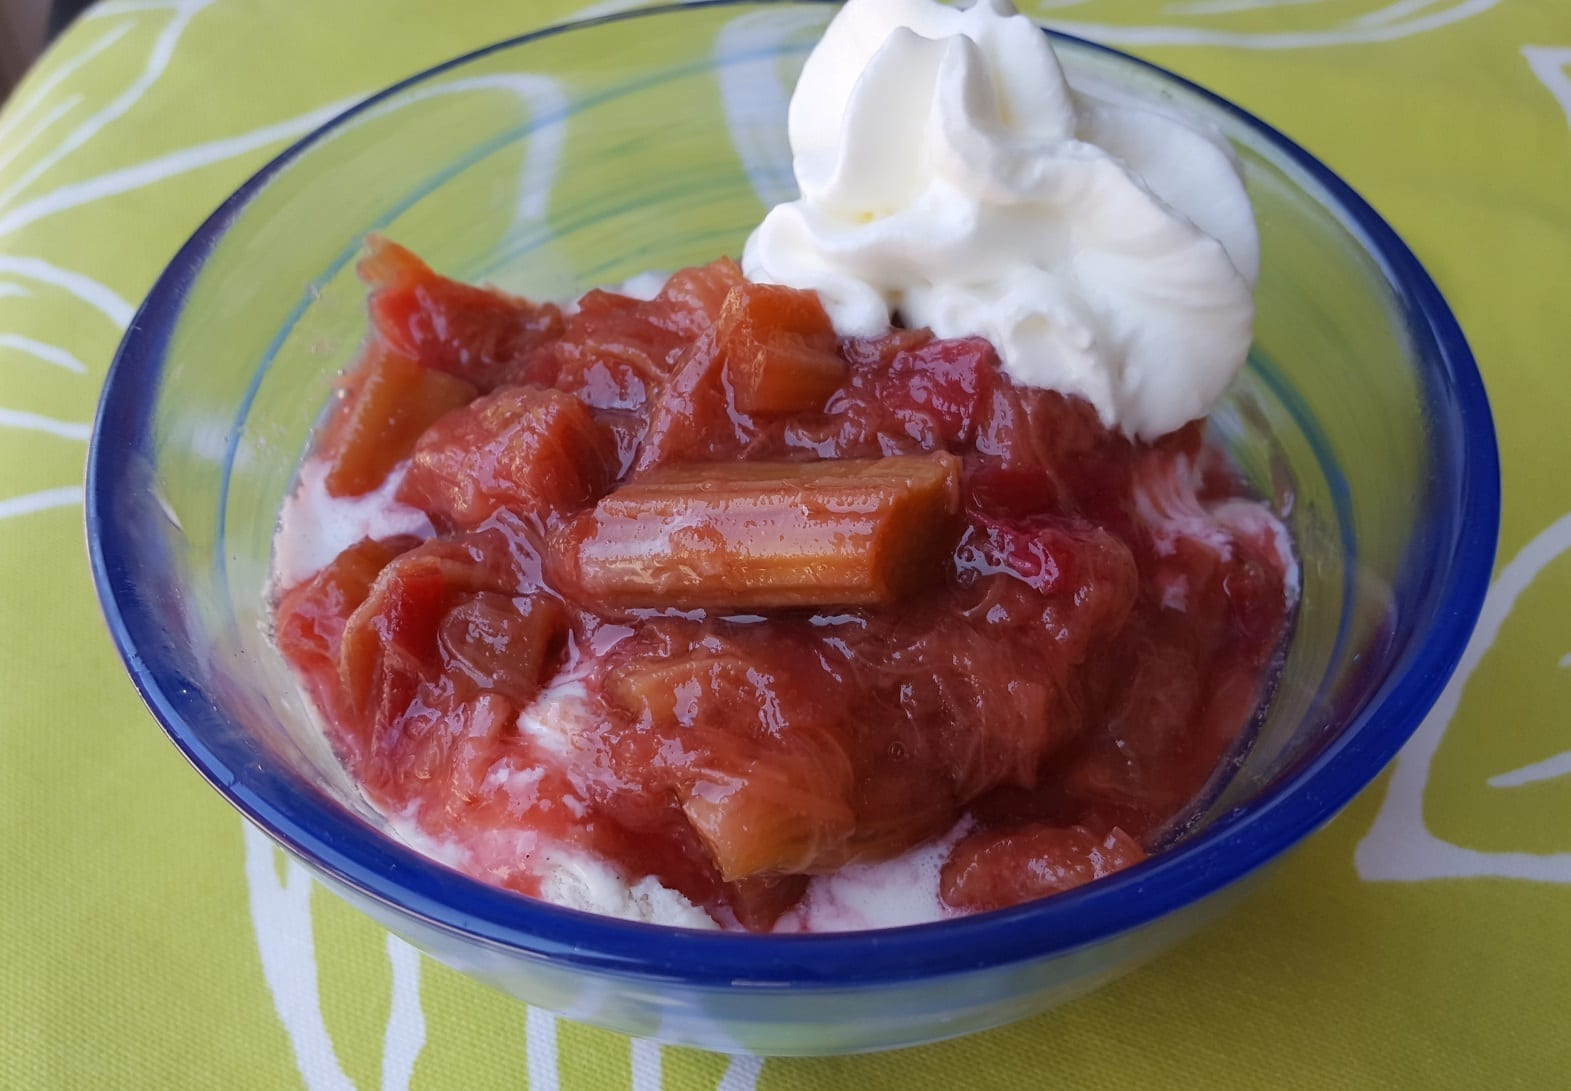 This German Rhubarb Compote Recipe is Easy to Make!